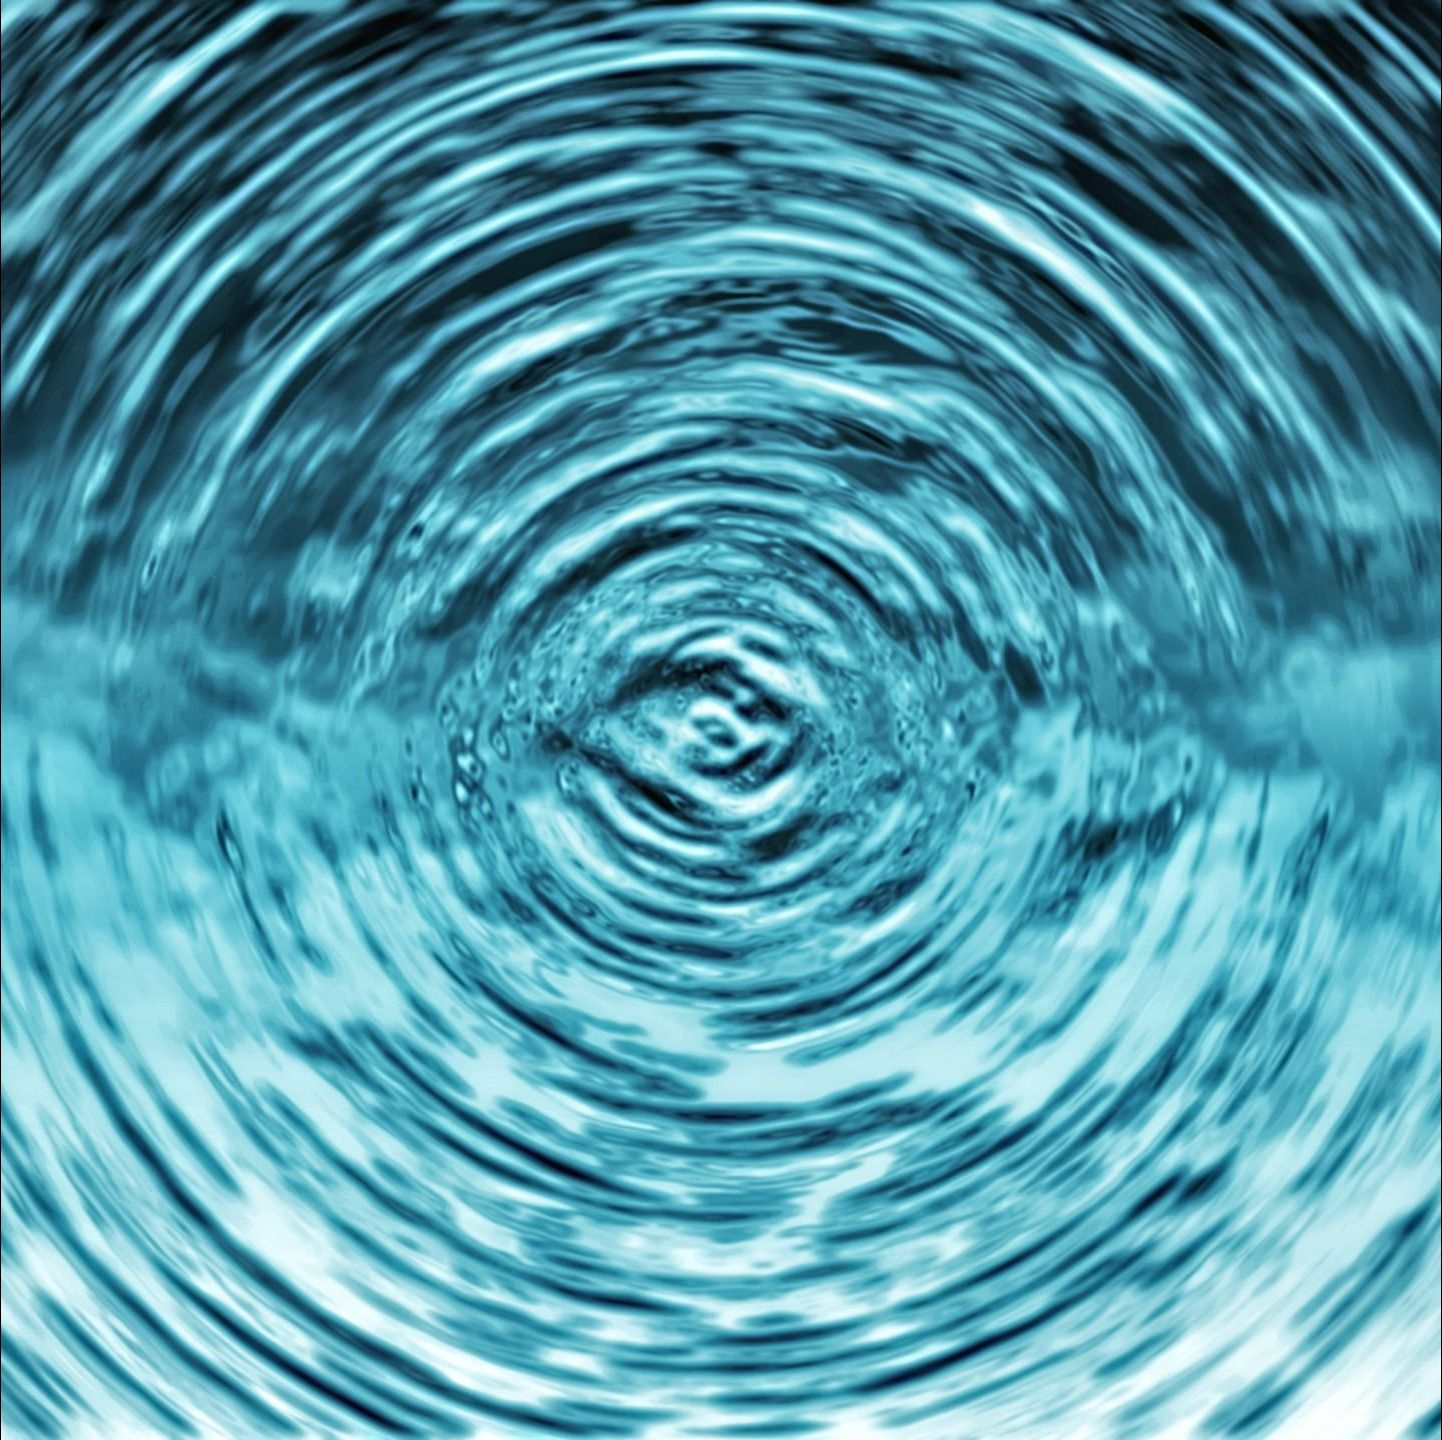 Ripples radiate outward from the center of a volume of water.